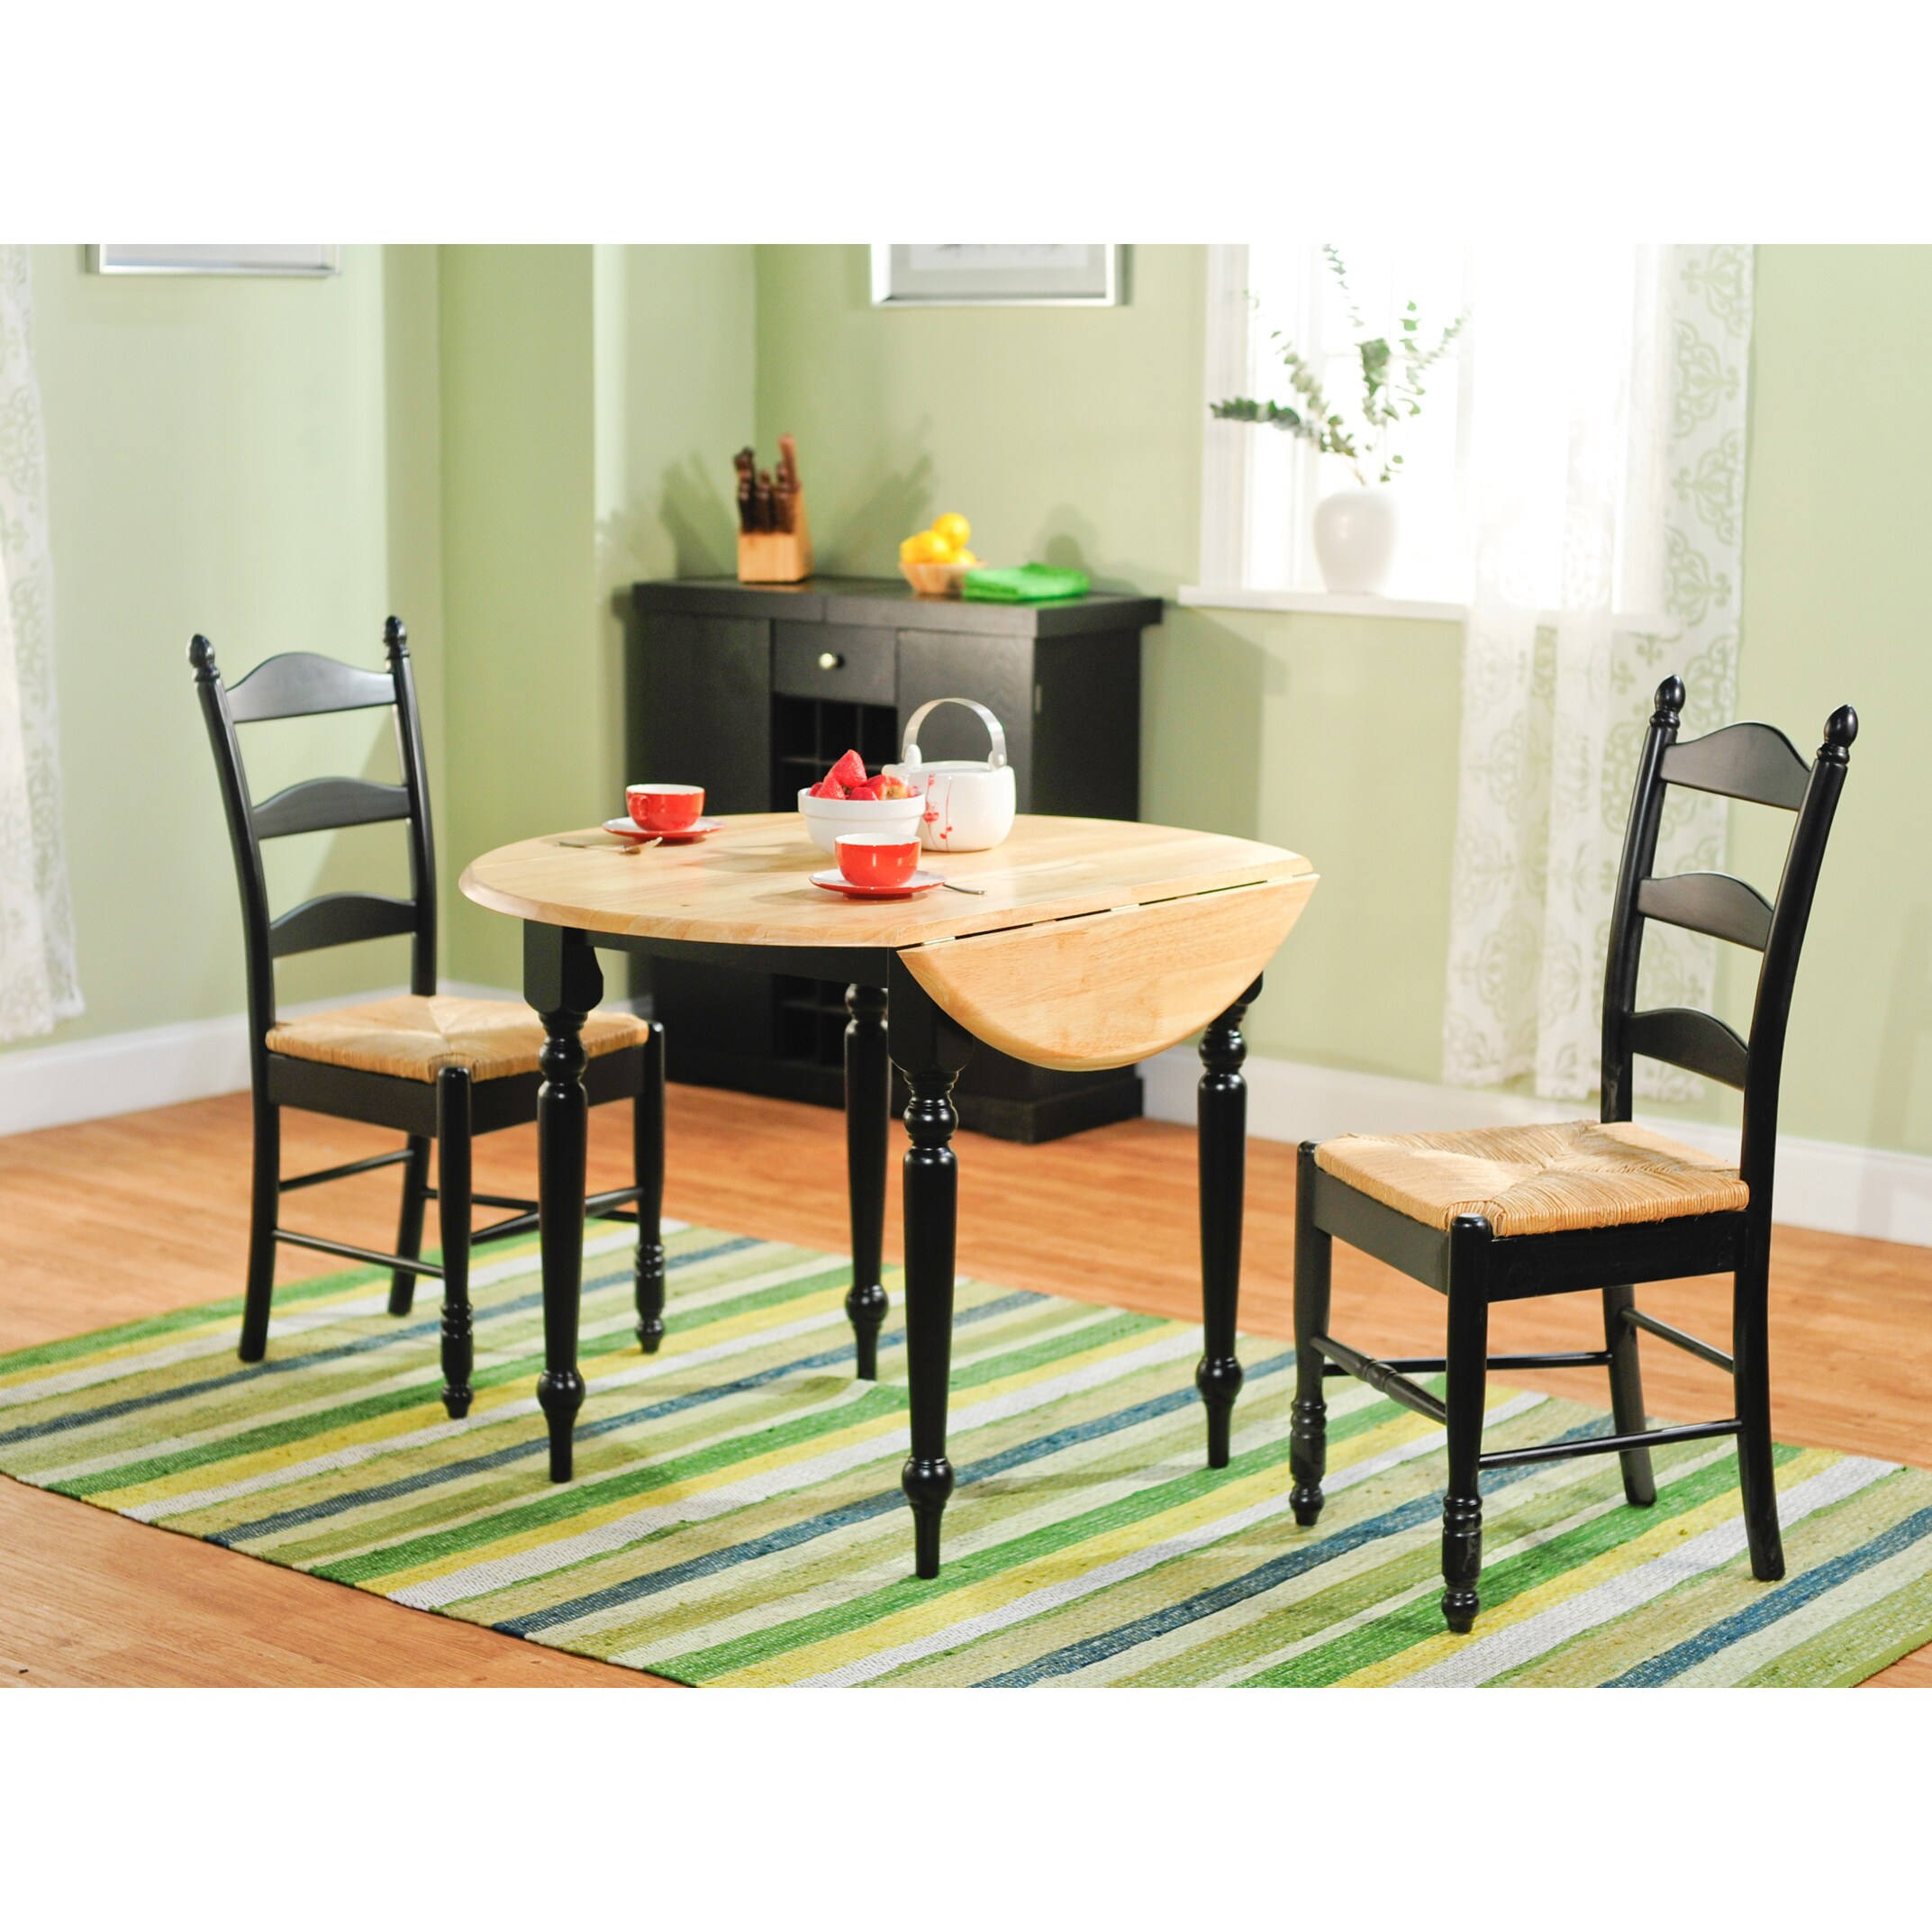 simple living 3 piece ladderback dining set 13716413